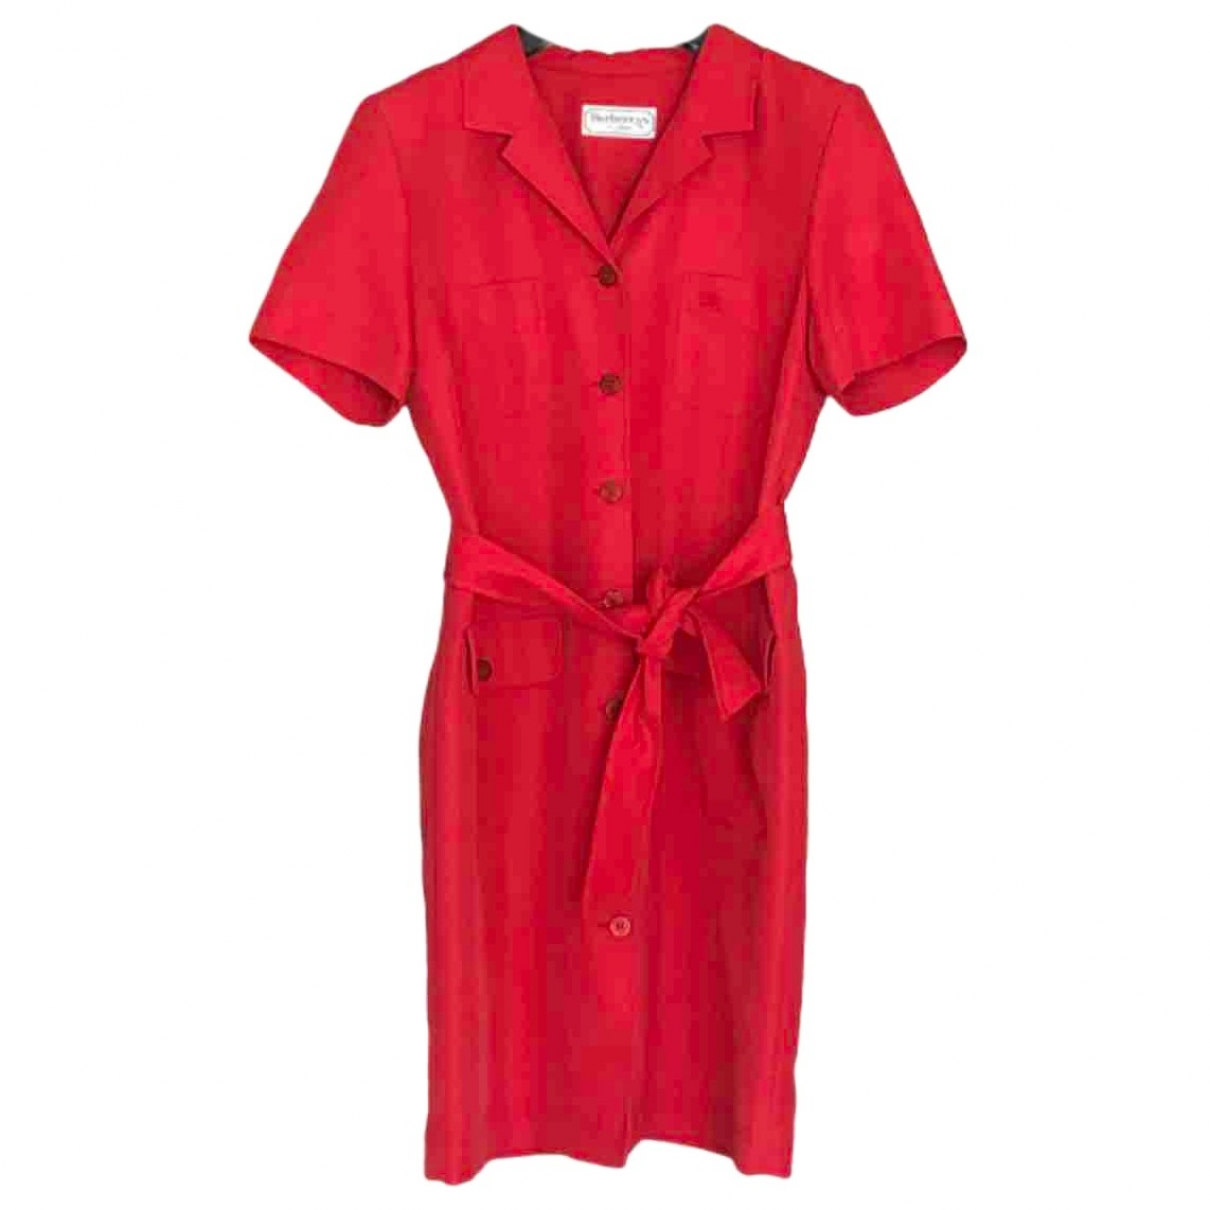 Burberry \N Kleid in  Rot Polyester